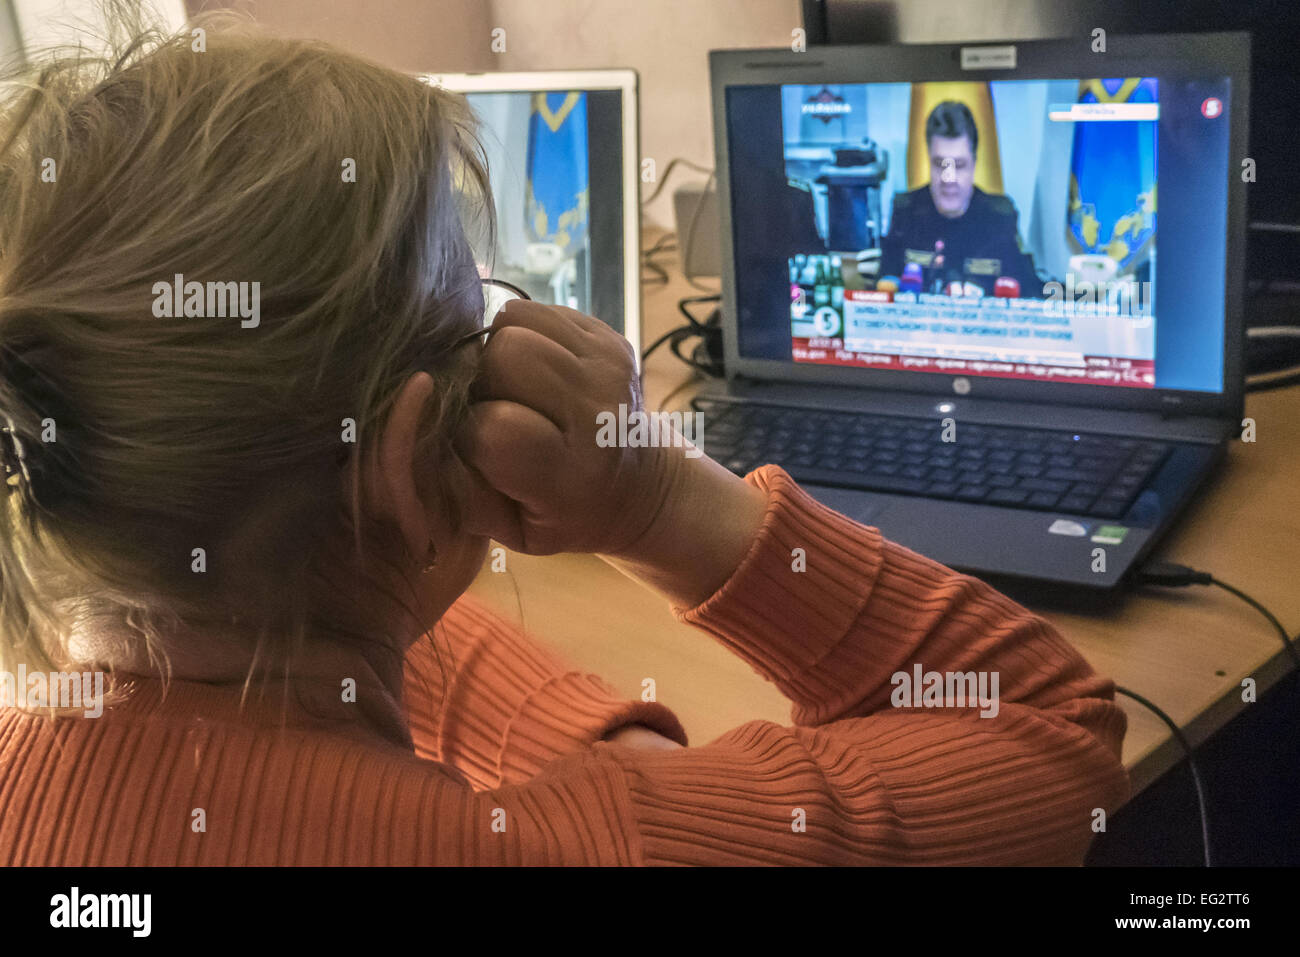 Women are temporary migrant from Lugansk, looking, in a rented apartment, the broadcast appeal of the President - Stock Image